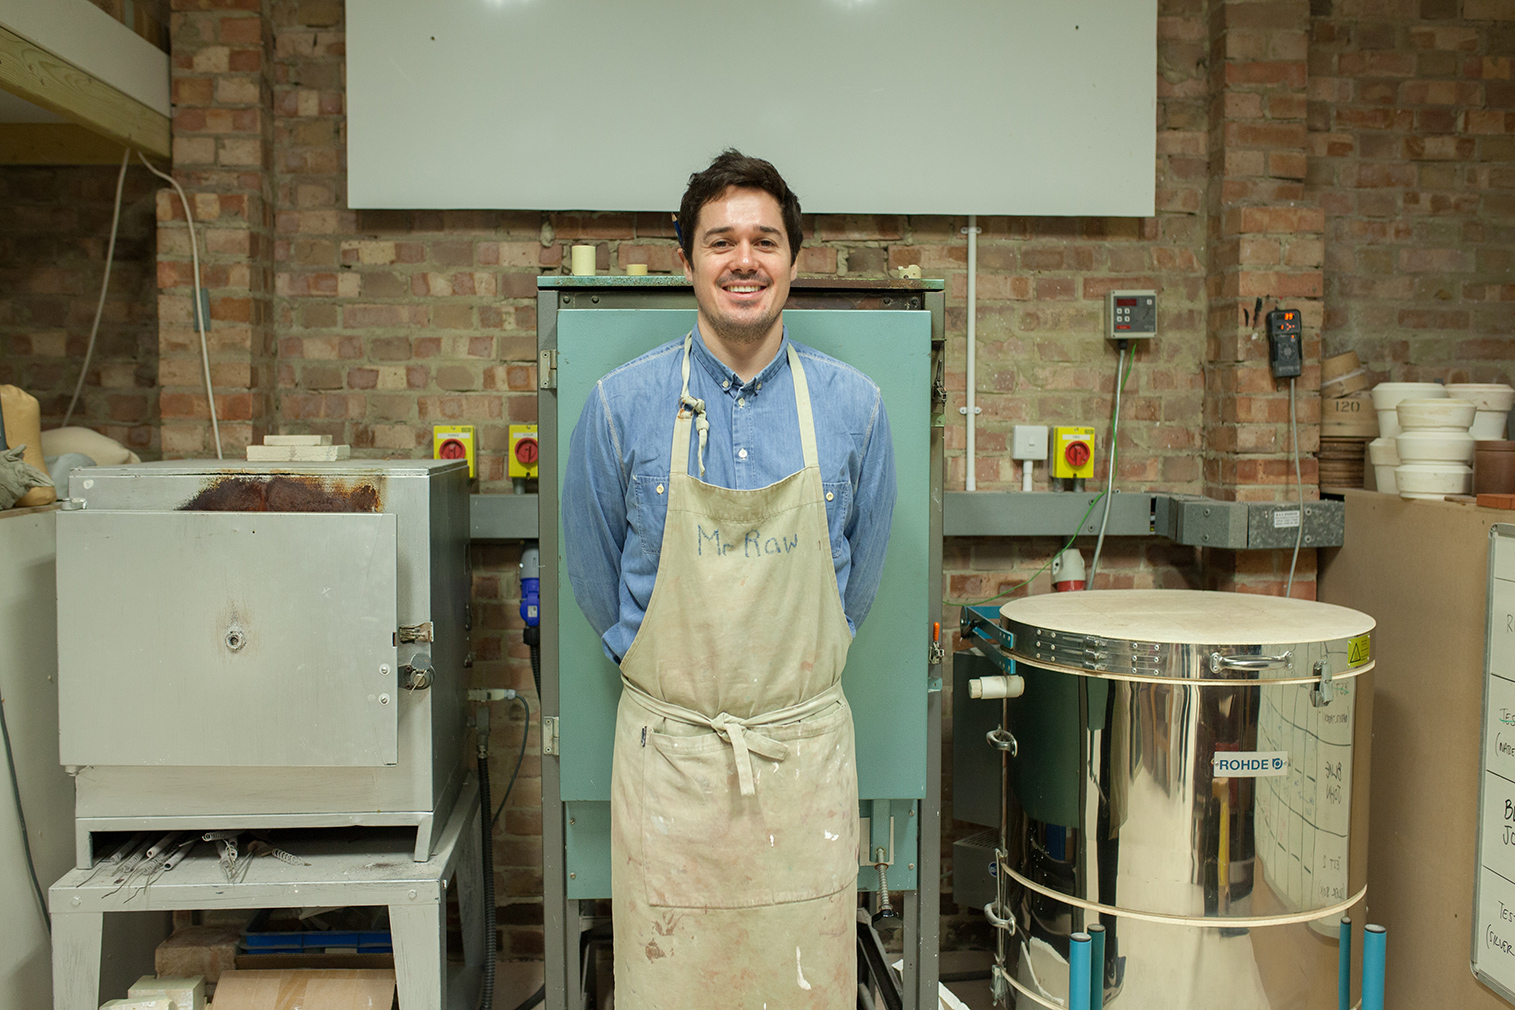 Ceramicist Matthew Raw in his Haggerston studio space. Photography: Marina Castagna